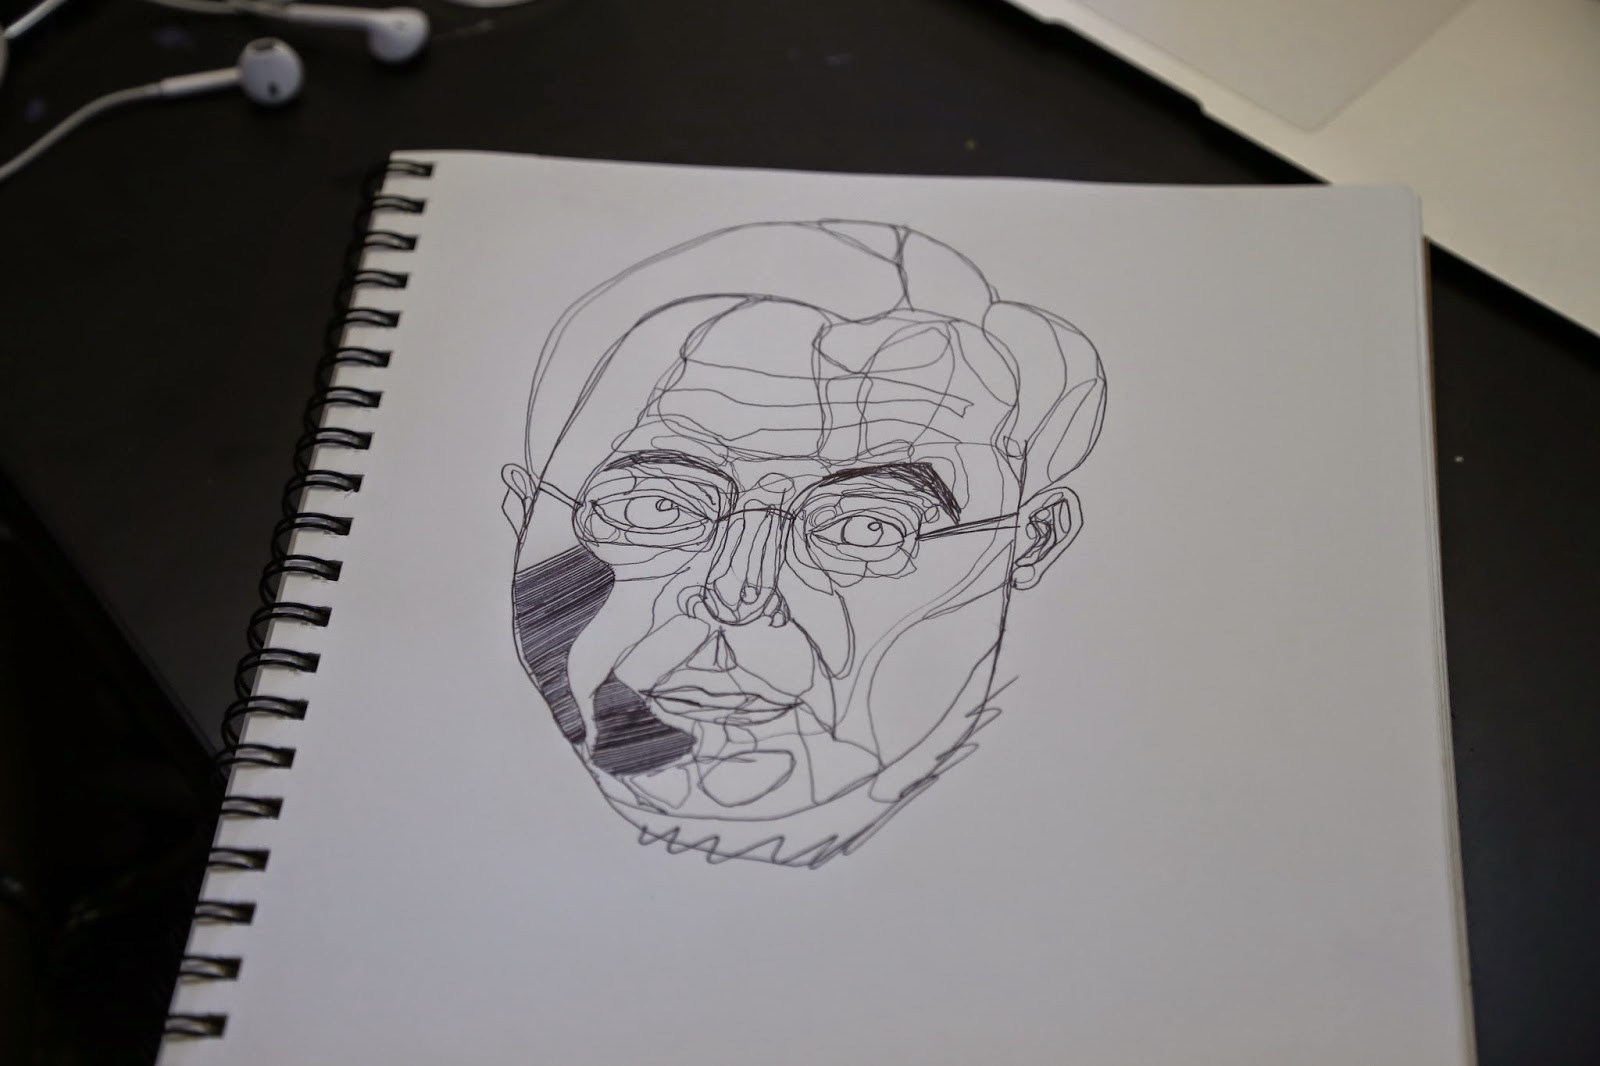 The Line Artist : Grauer art line drawing artist josh bryan inspired internship